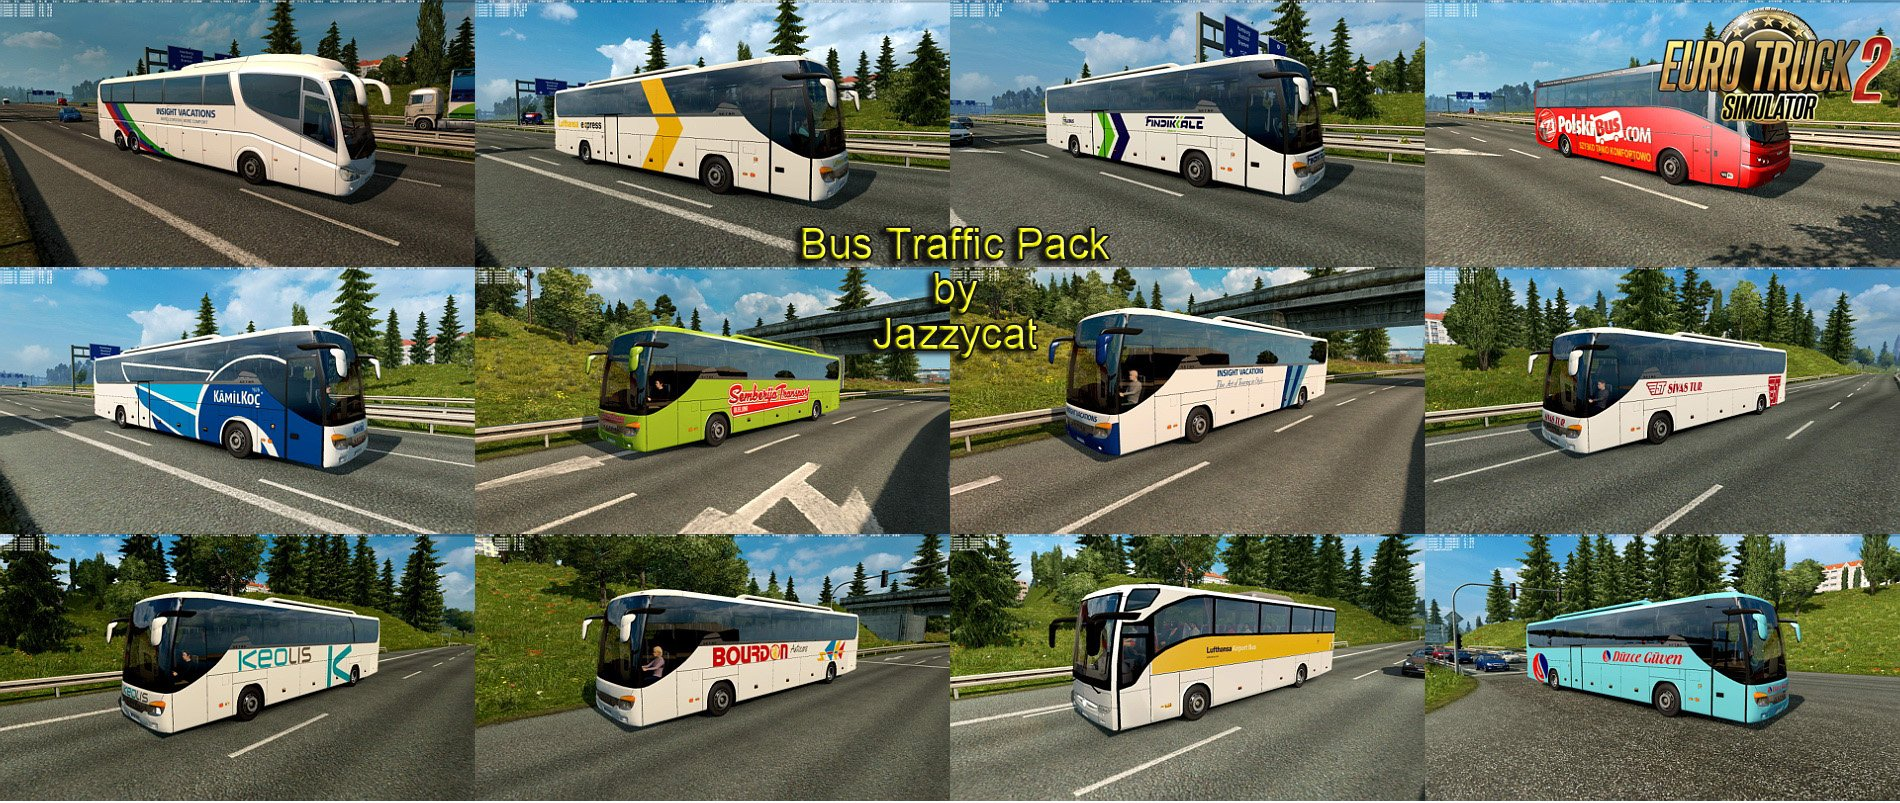 Bus Traffic Pack v3.4 by Jazzycat